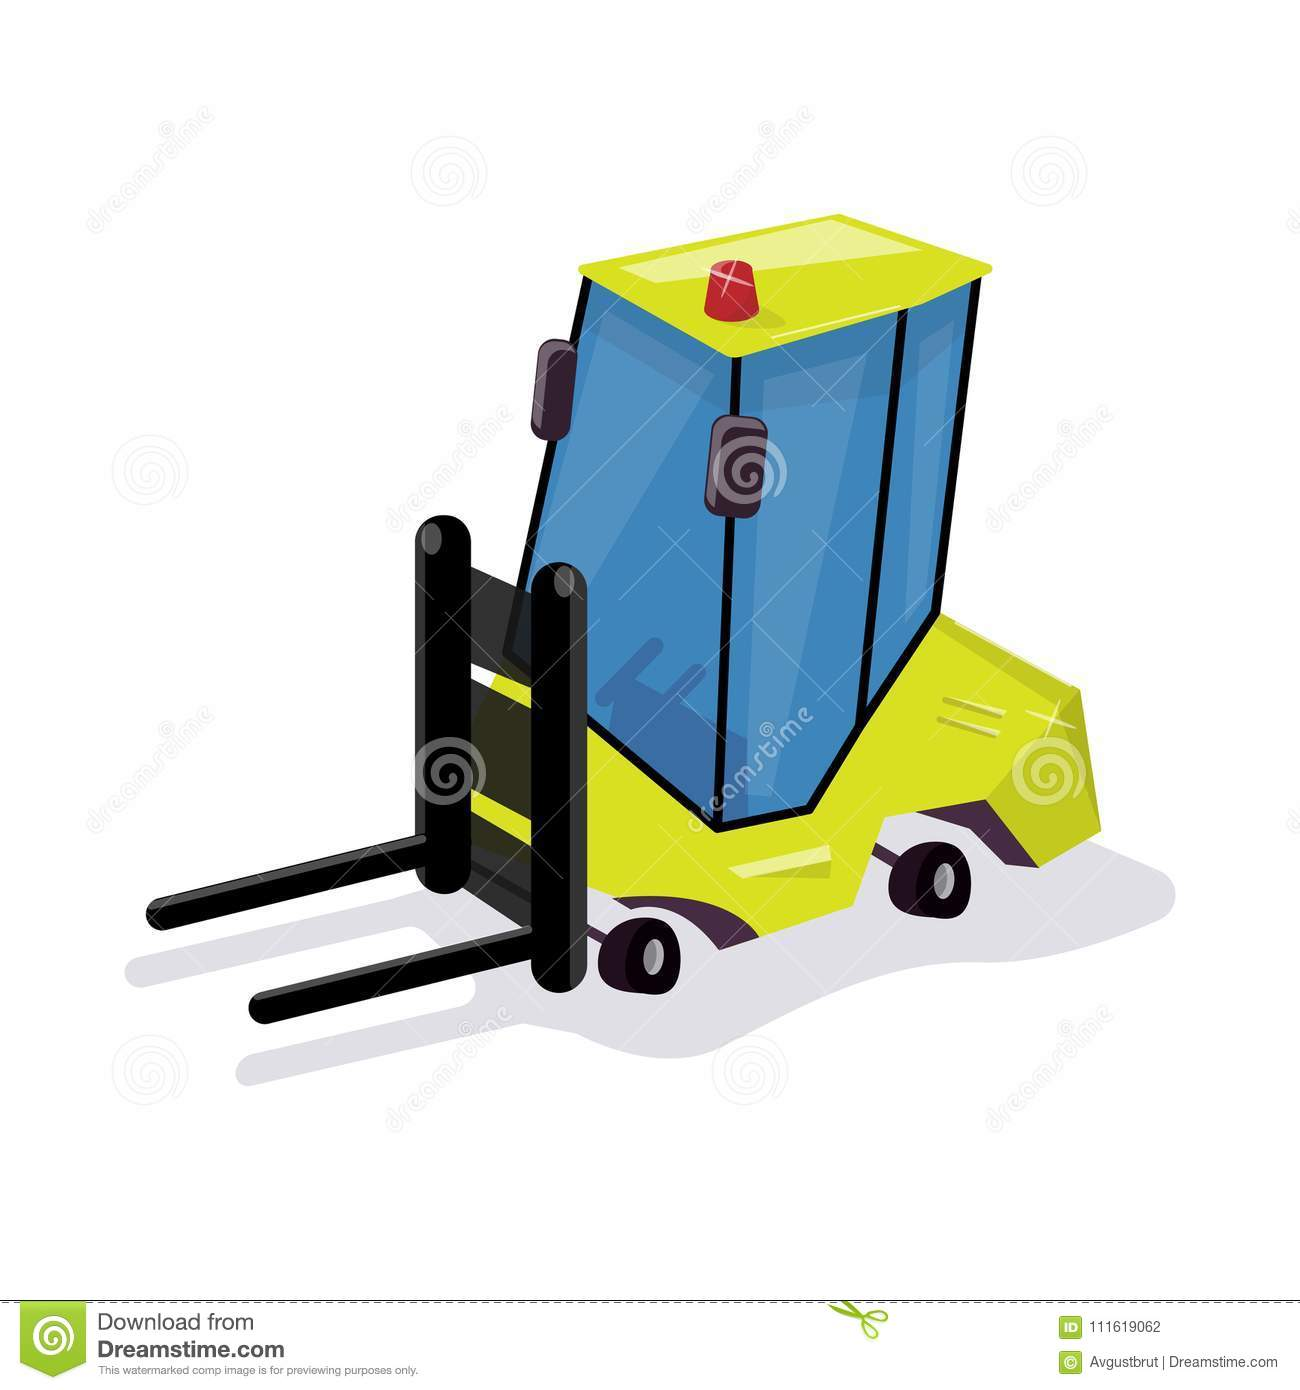 Funny cartoon loader. Equipment for the warehouse.